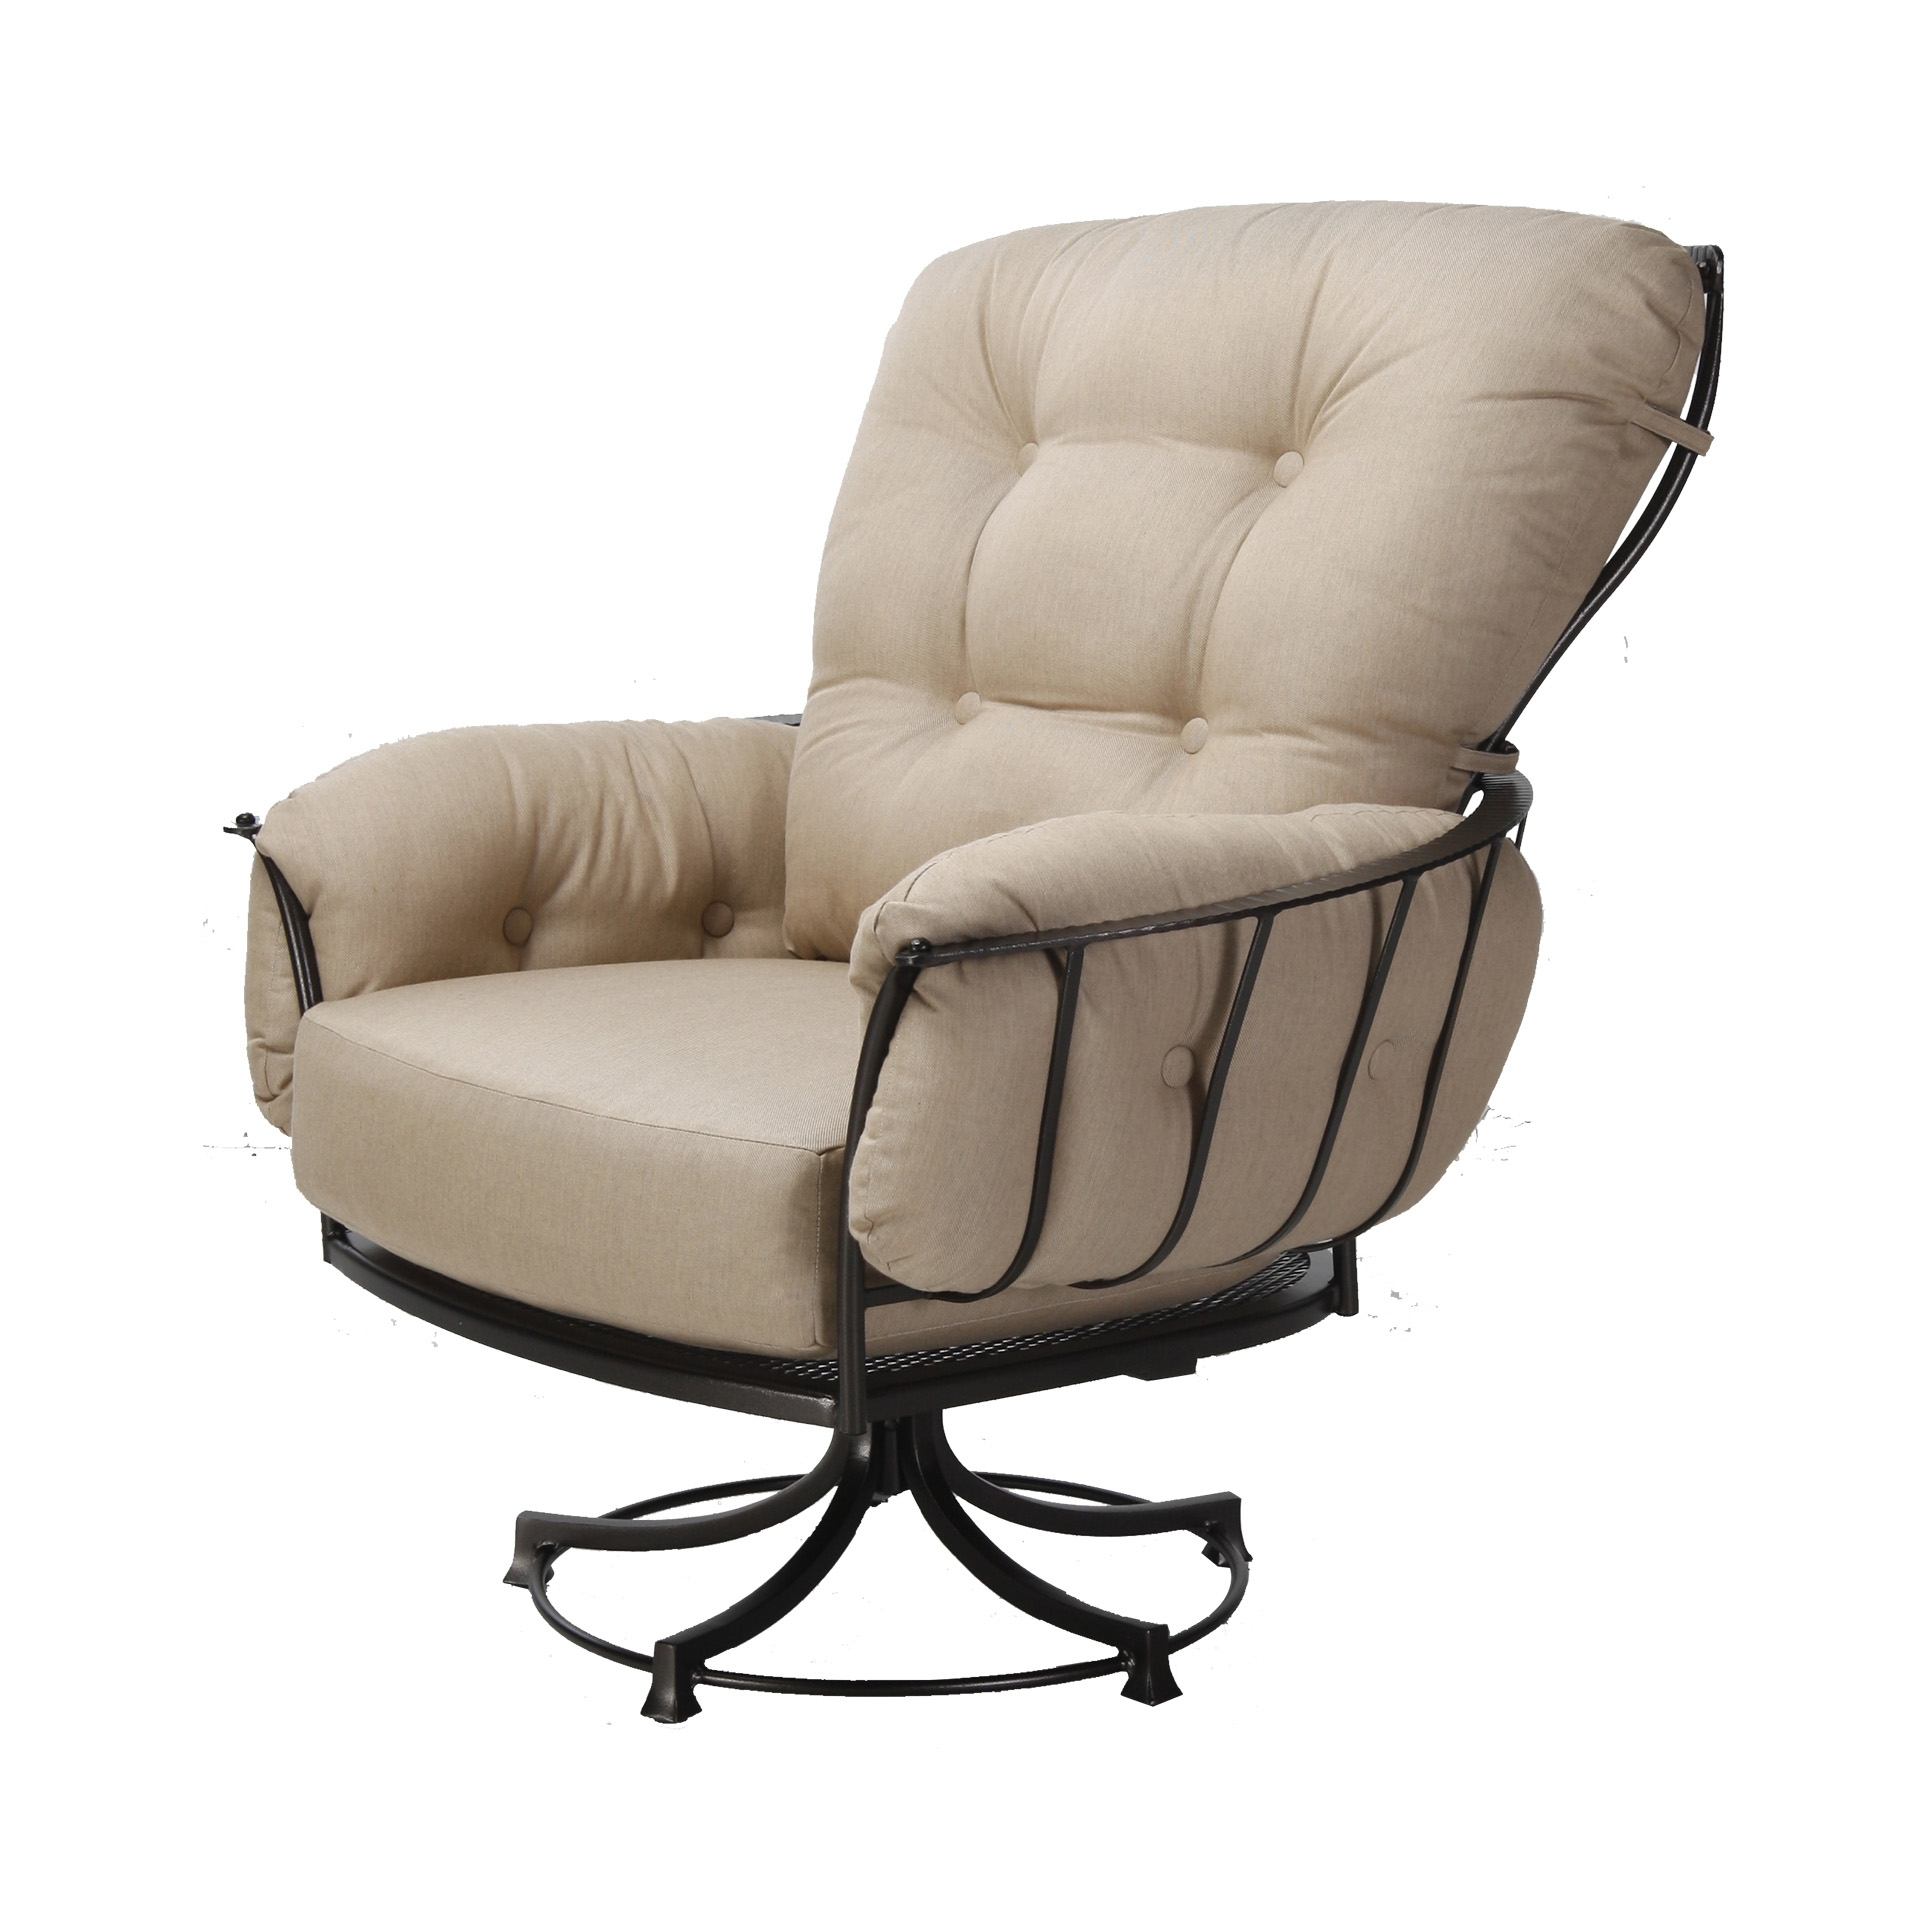 Adorable Pictures Of Swivel Patio Chairs Sale – Best Home Plans And Inside Latest Patio Rocking Swivel Chairs (View 11 of 20)